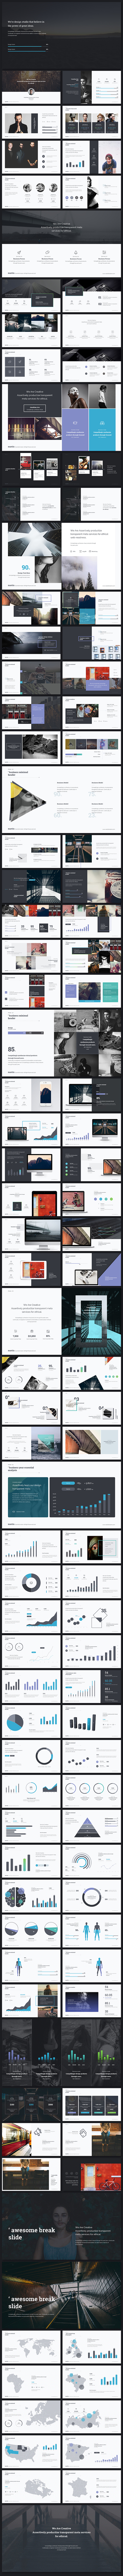 Martin business themes business powerpoint templates template and buy martin business themes by simplesmart on graphicriver martin business creative template get a modern powerpoint presentation that is beautifully toneelgroepblik Gallery